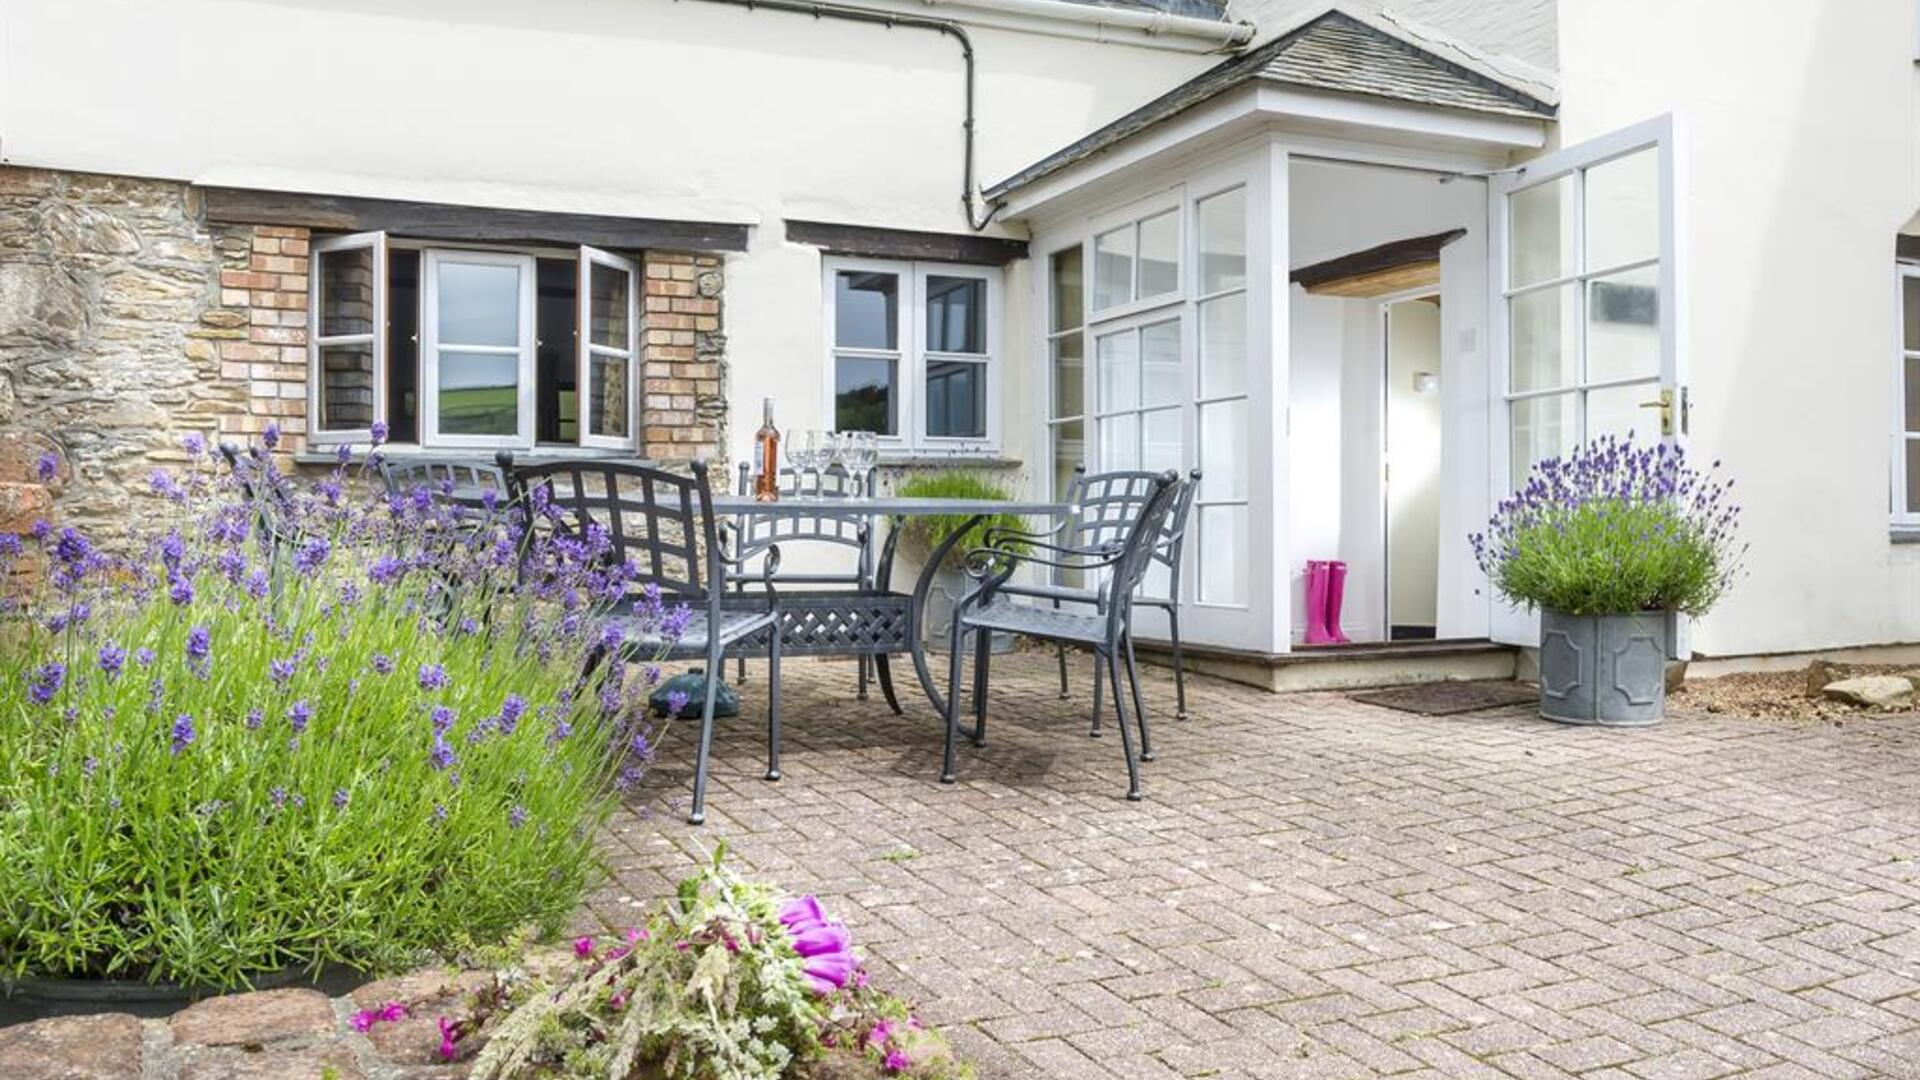 3 Bedroom Cottage/shared facilities in Devon, United Kingdom